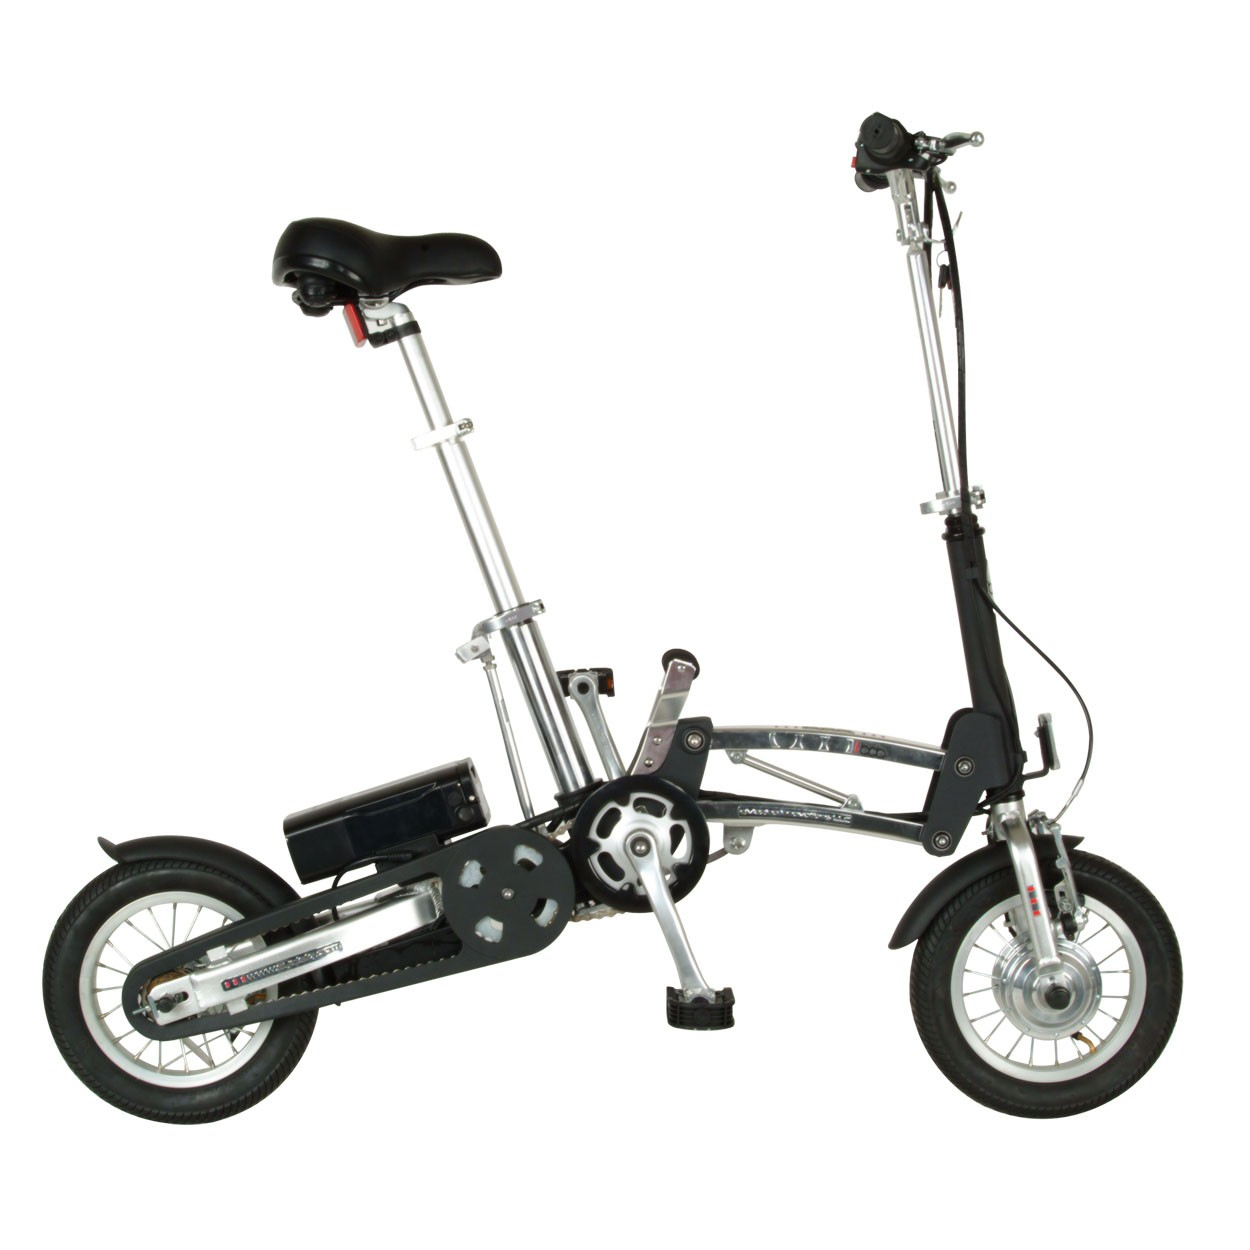 E-Mazing Innovations 12 inch Foldable Electronic Bike